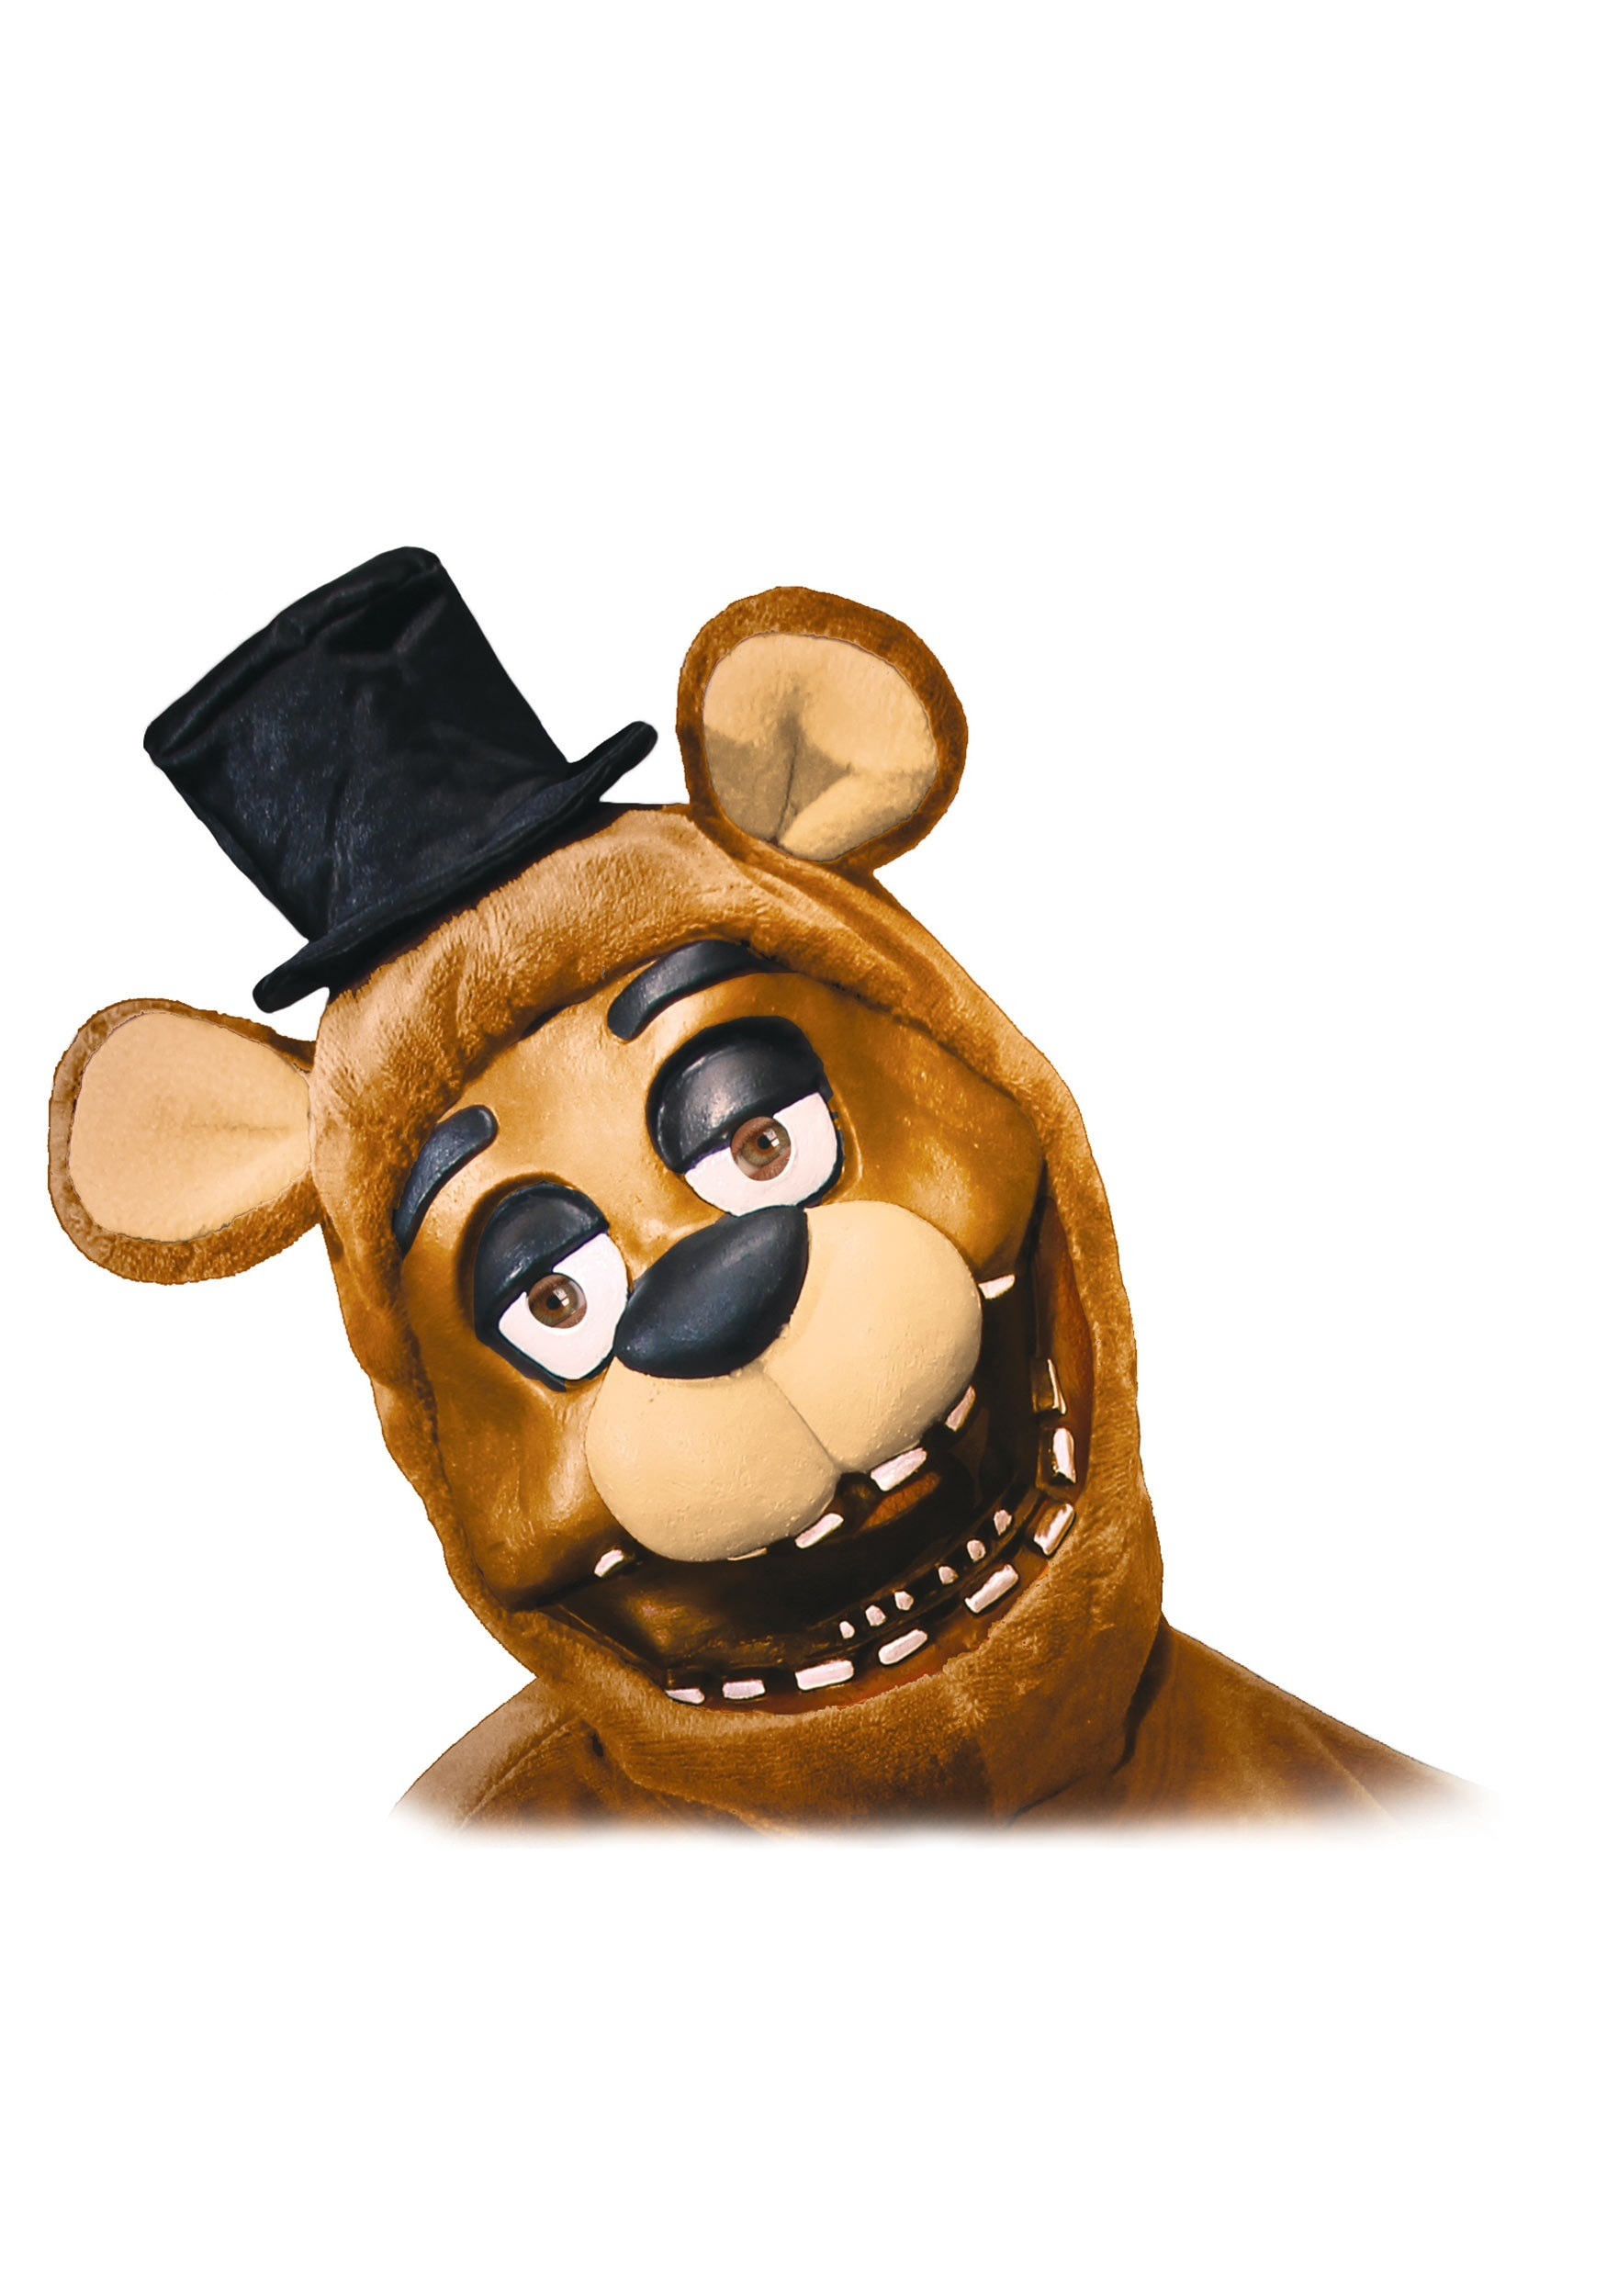 Five Nights at Freddy's Gifts - FNAF Merchandise